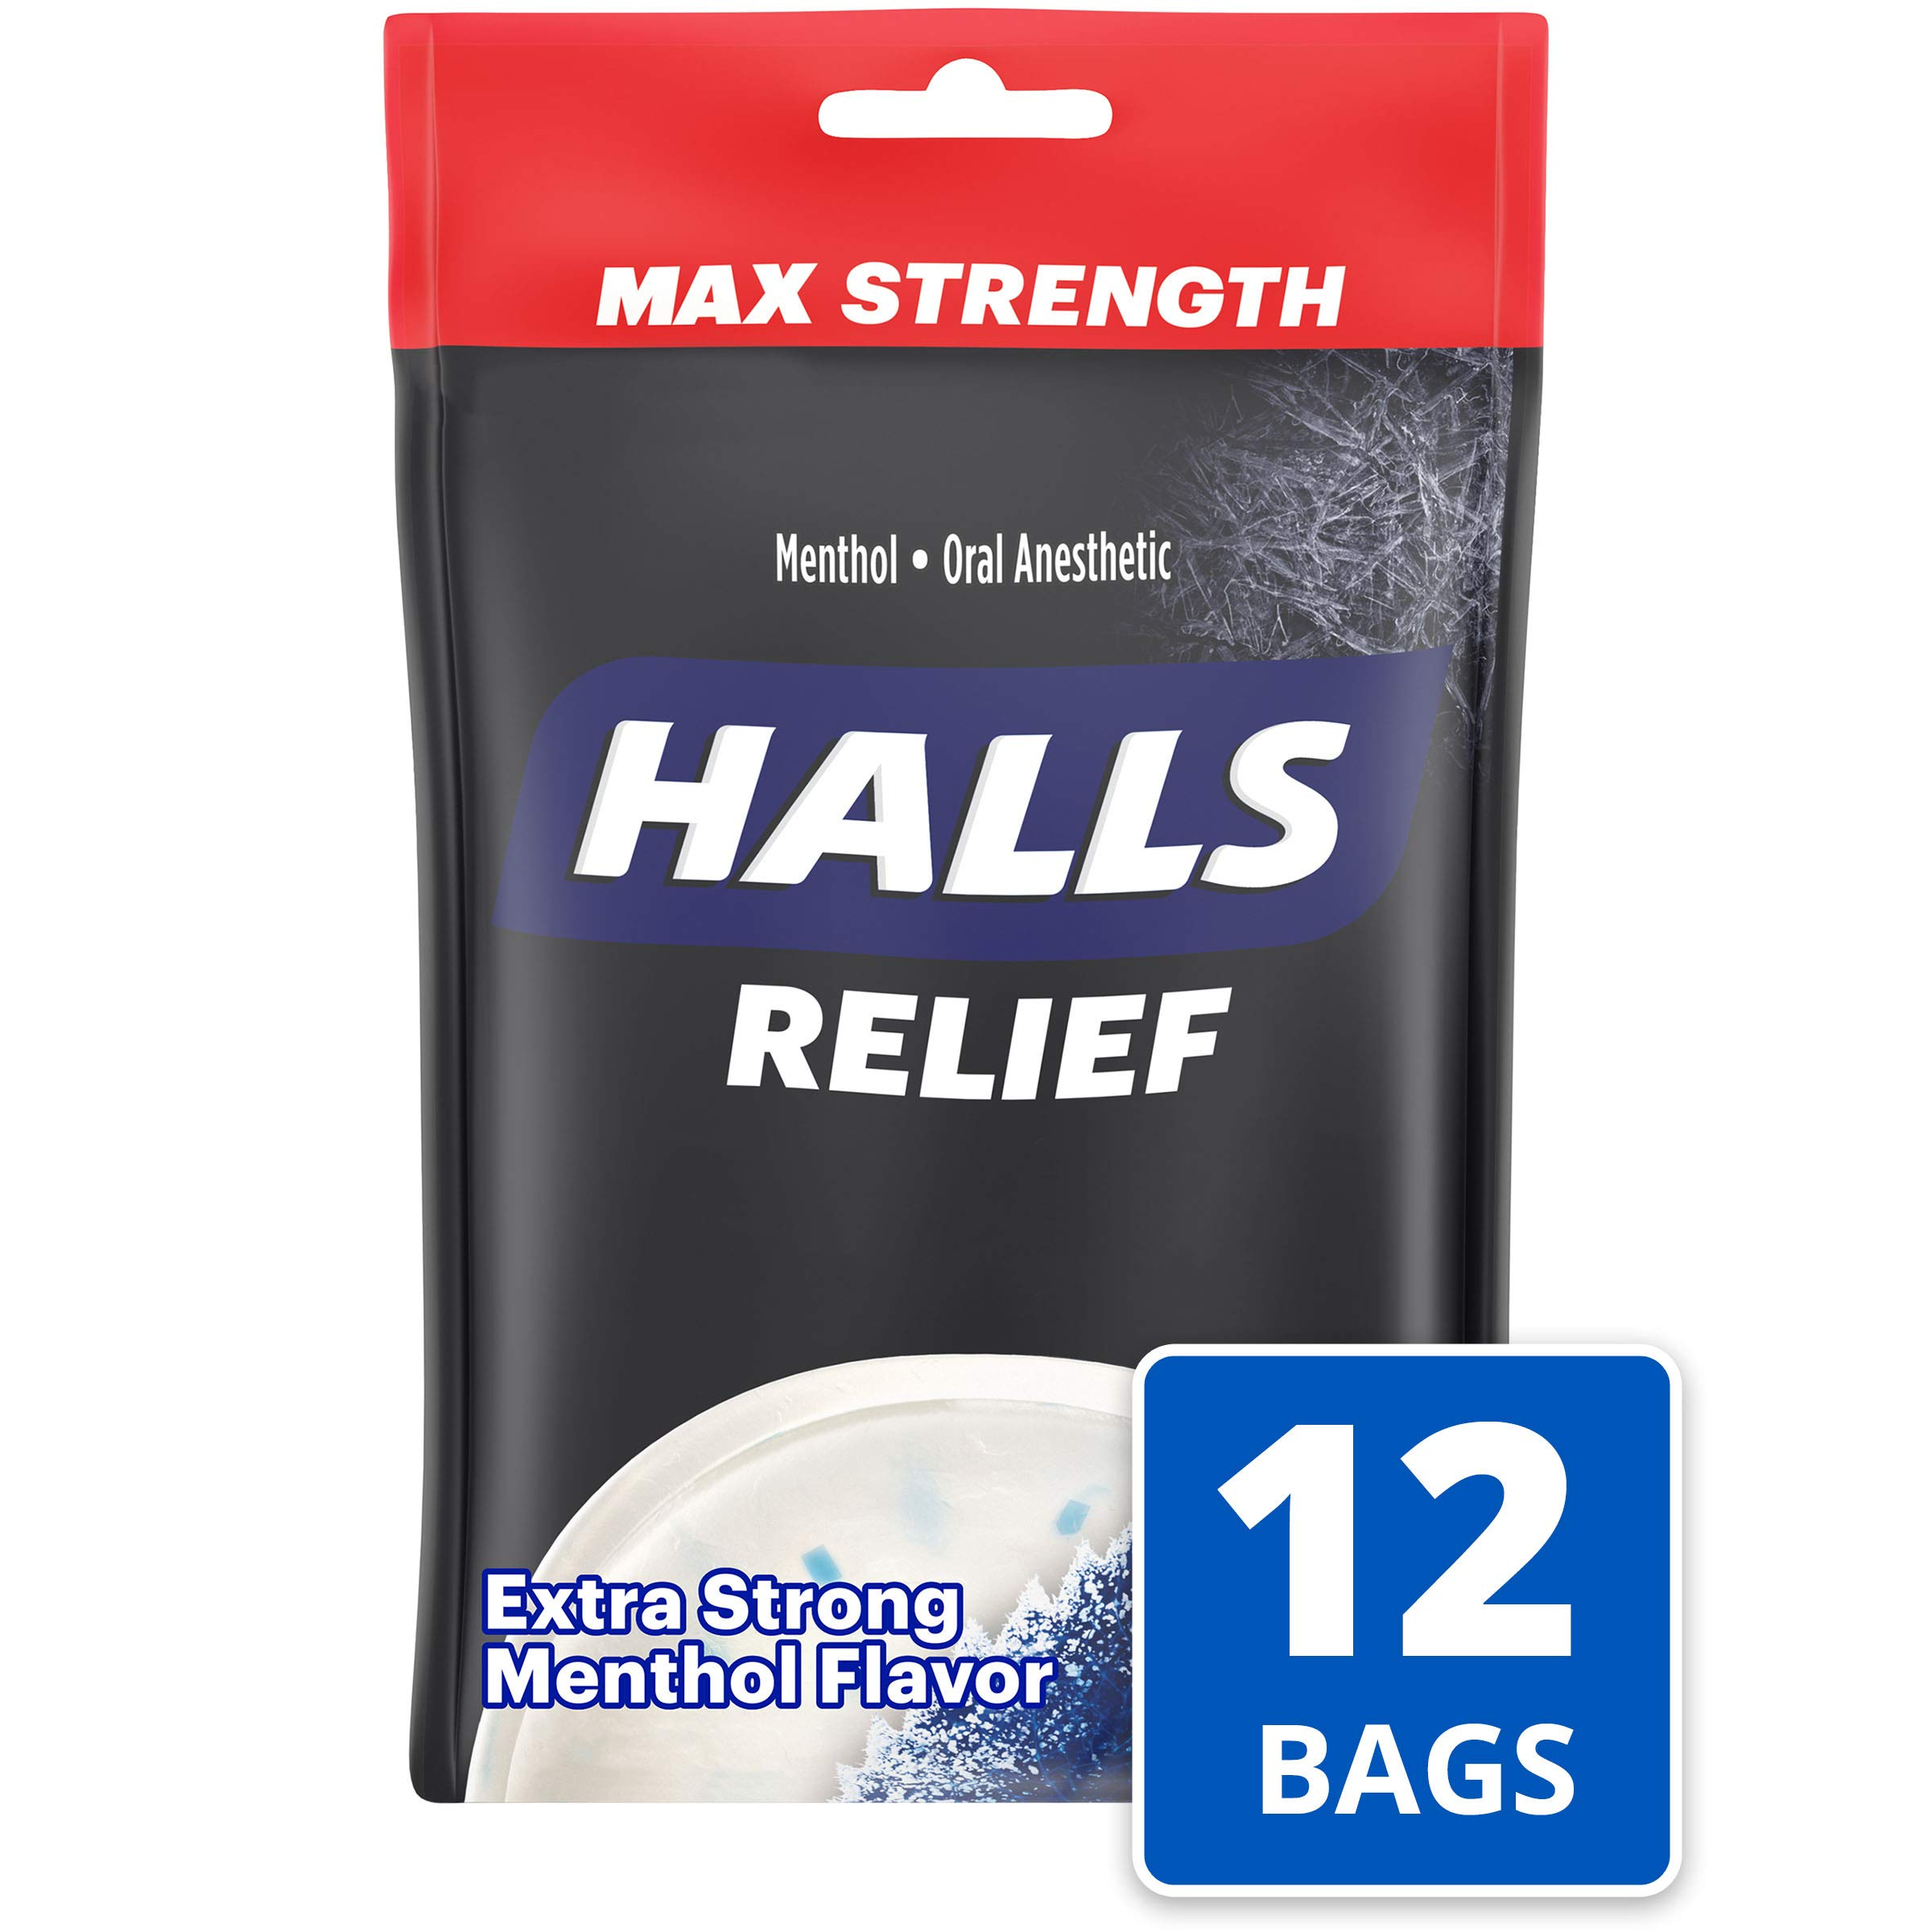 Halls Extra Strength Intense Cool Cough Drops - with Menthol - 360 Drops (12 bags of 30 drops) by Halls